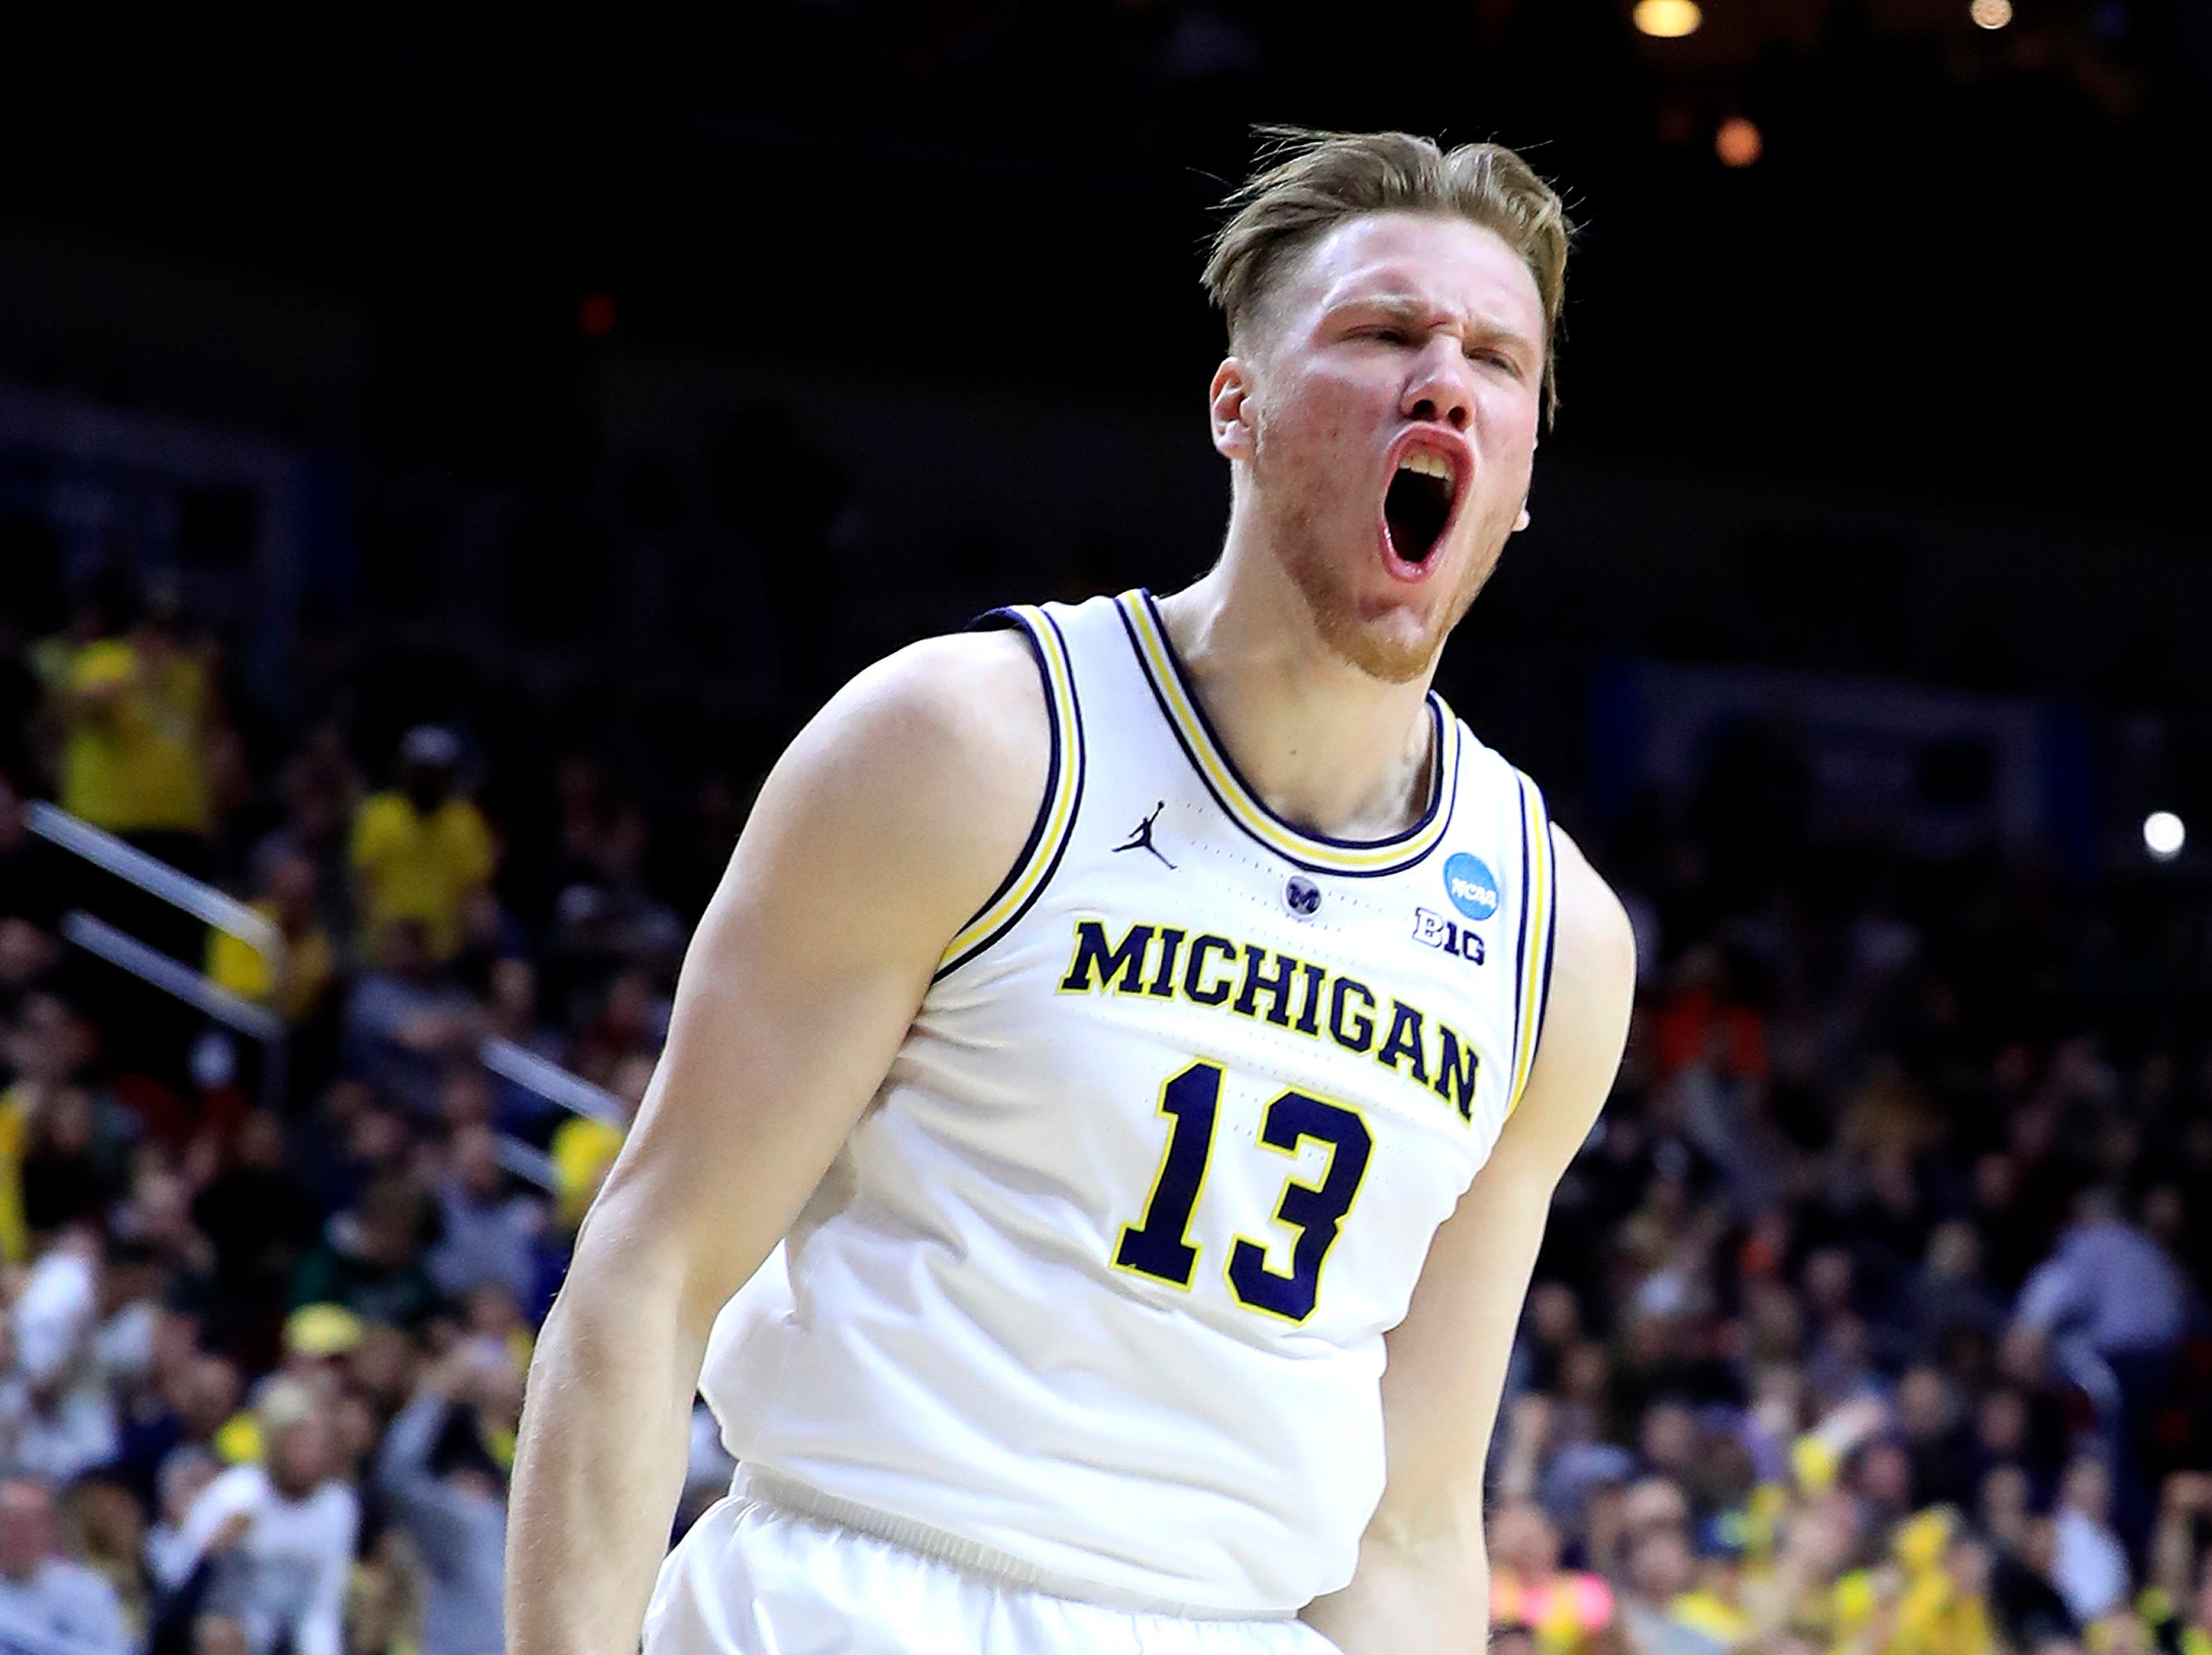 Michigan's Ignas Brazdeikis reacts after a dunk against the Florida Gators during the first half in the second round game of the NCAA tournament at Wells Fargo Arena on March 23, 2019 in Des Moines, Iowa.